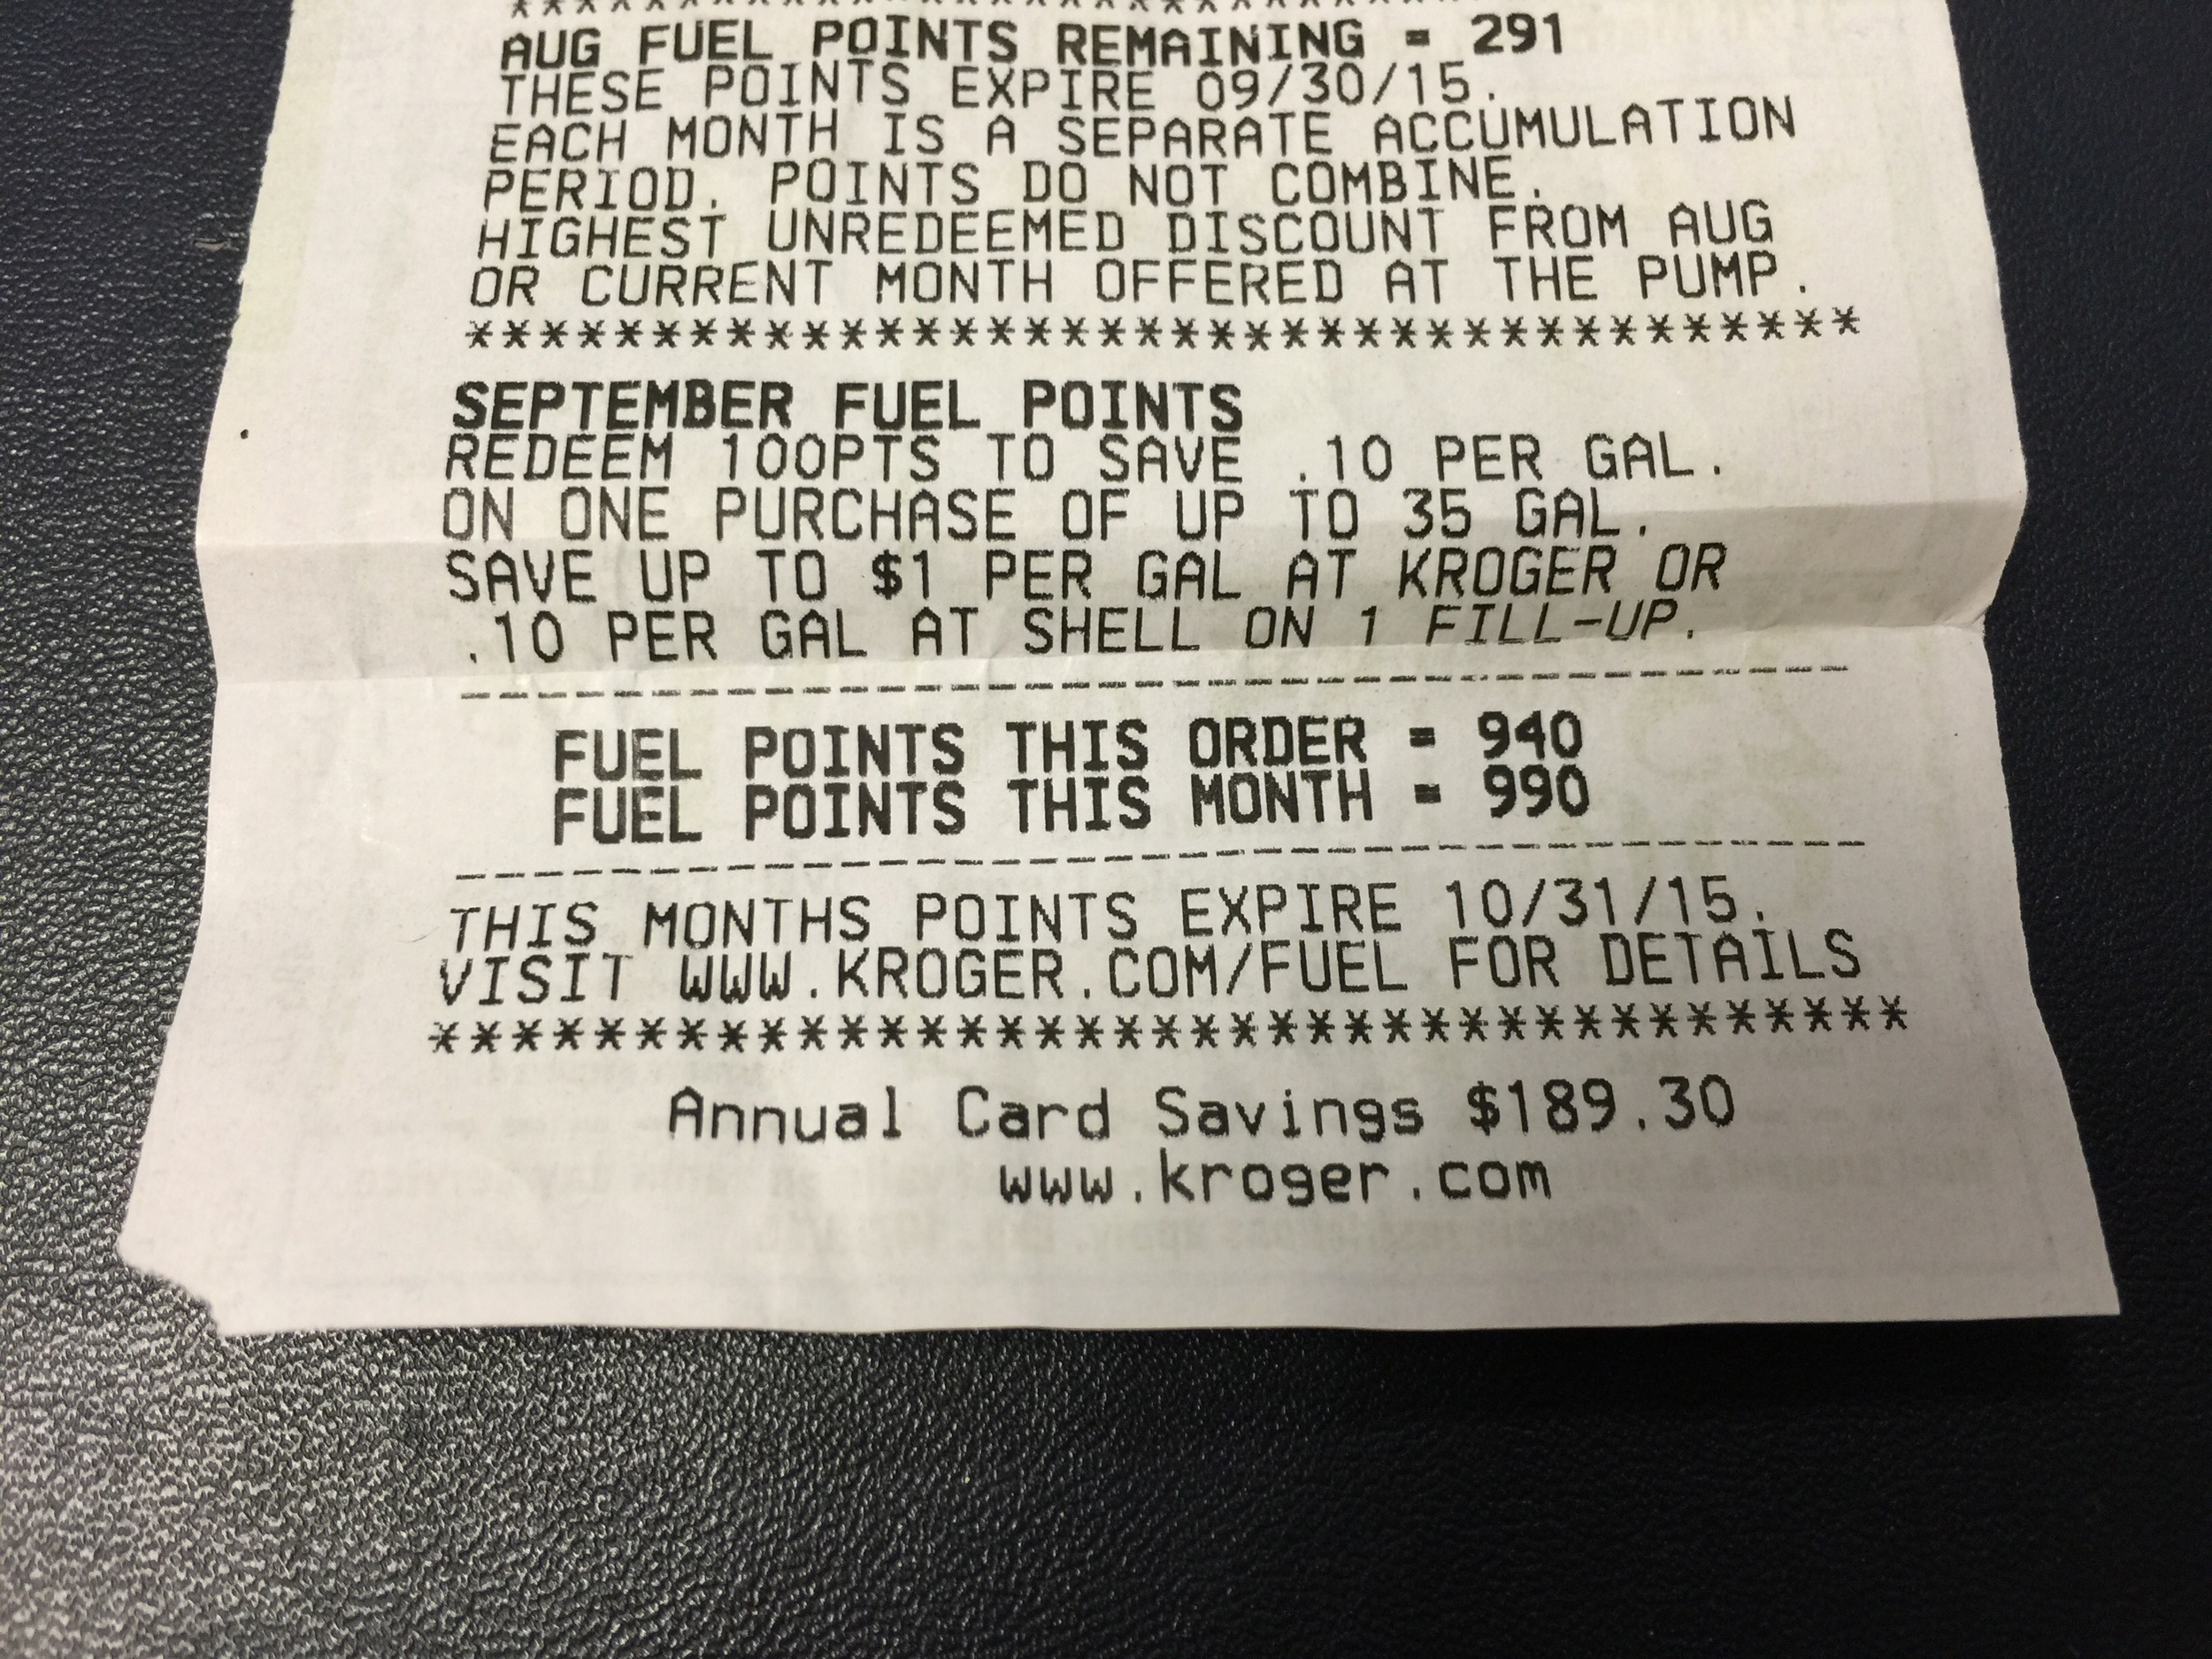 I spent $235 on gift cards and earned 940 Kroger fuel points! (click to enlarge)